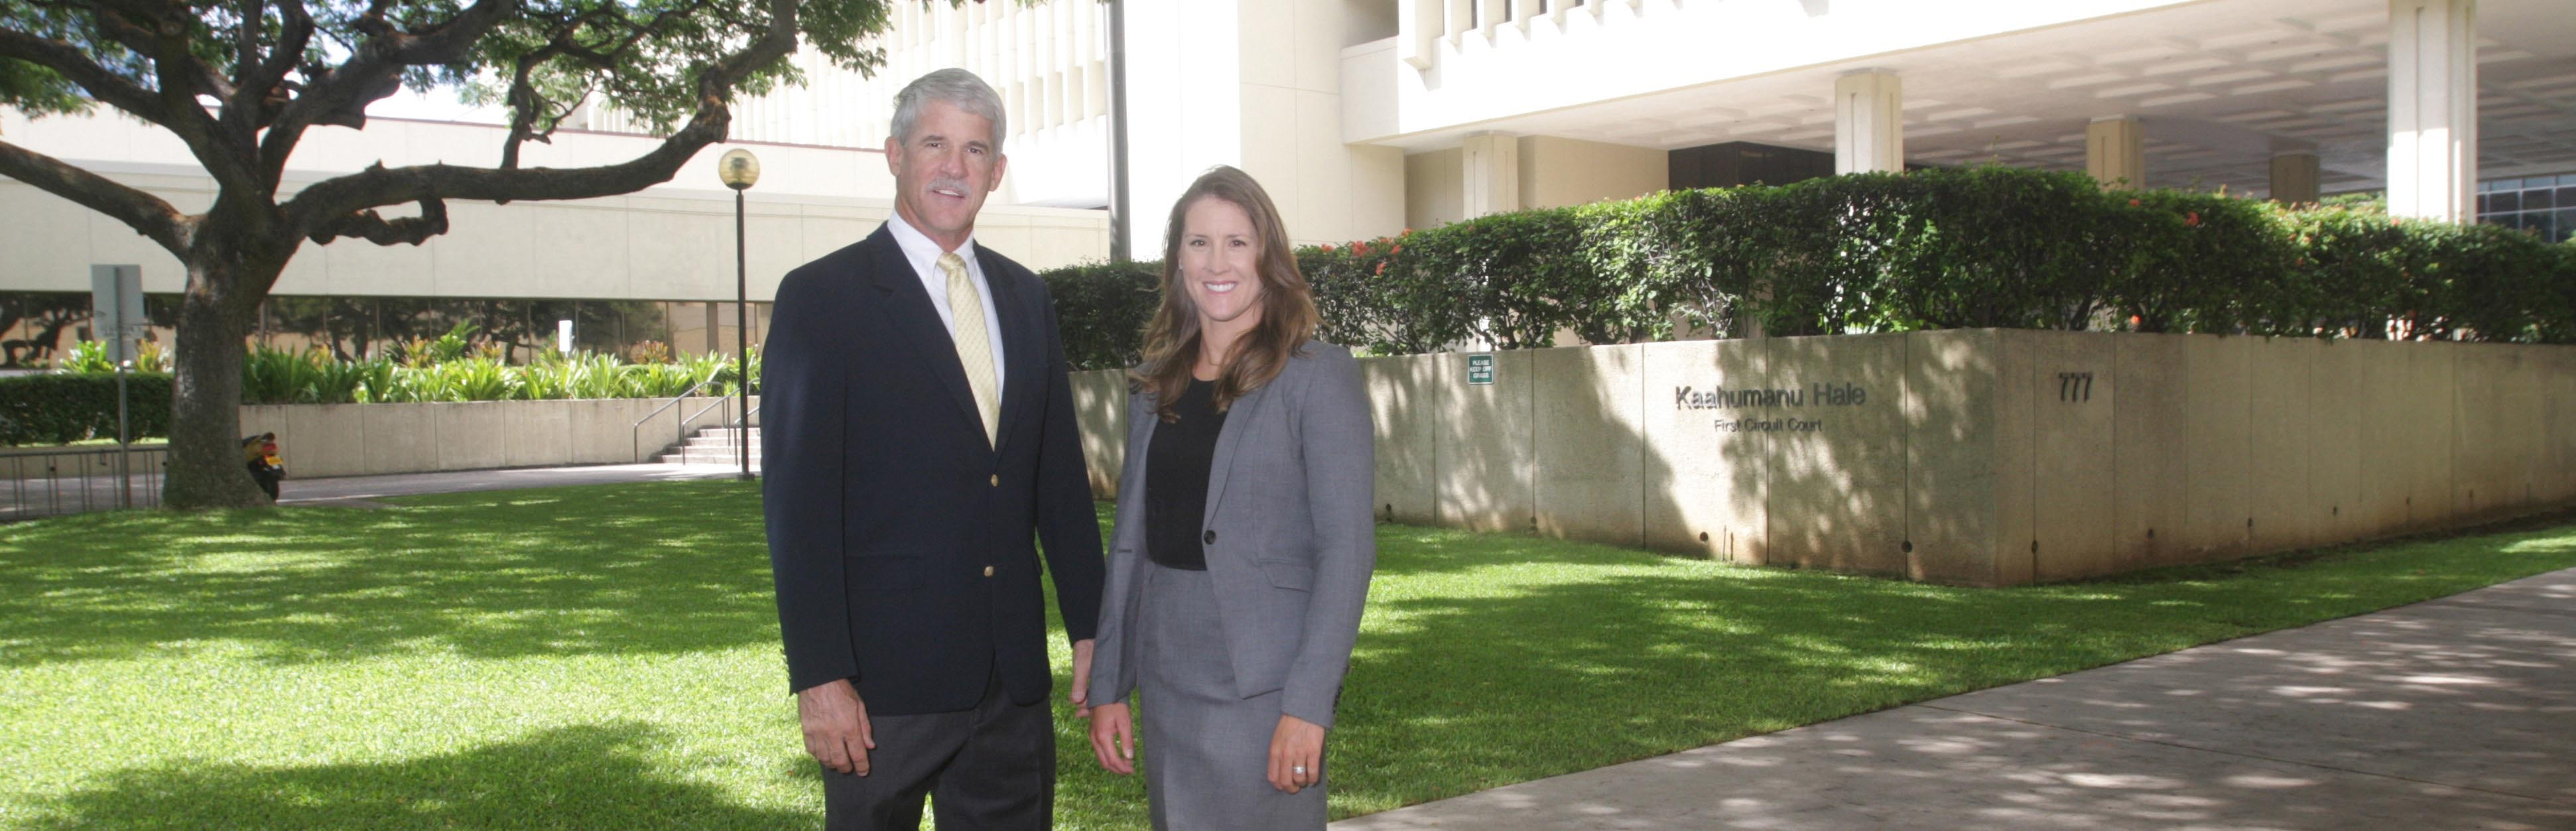 Honolulu Injury Lawyers William Lawson and Amy Woodward